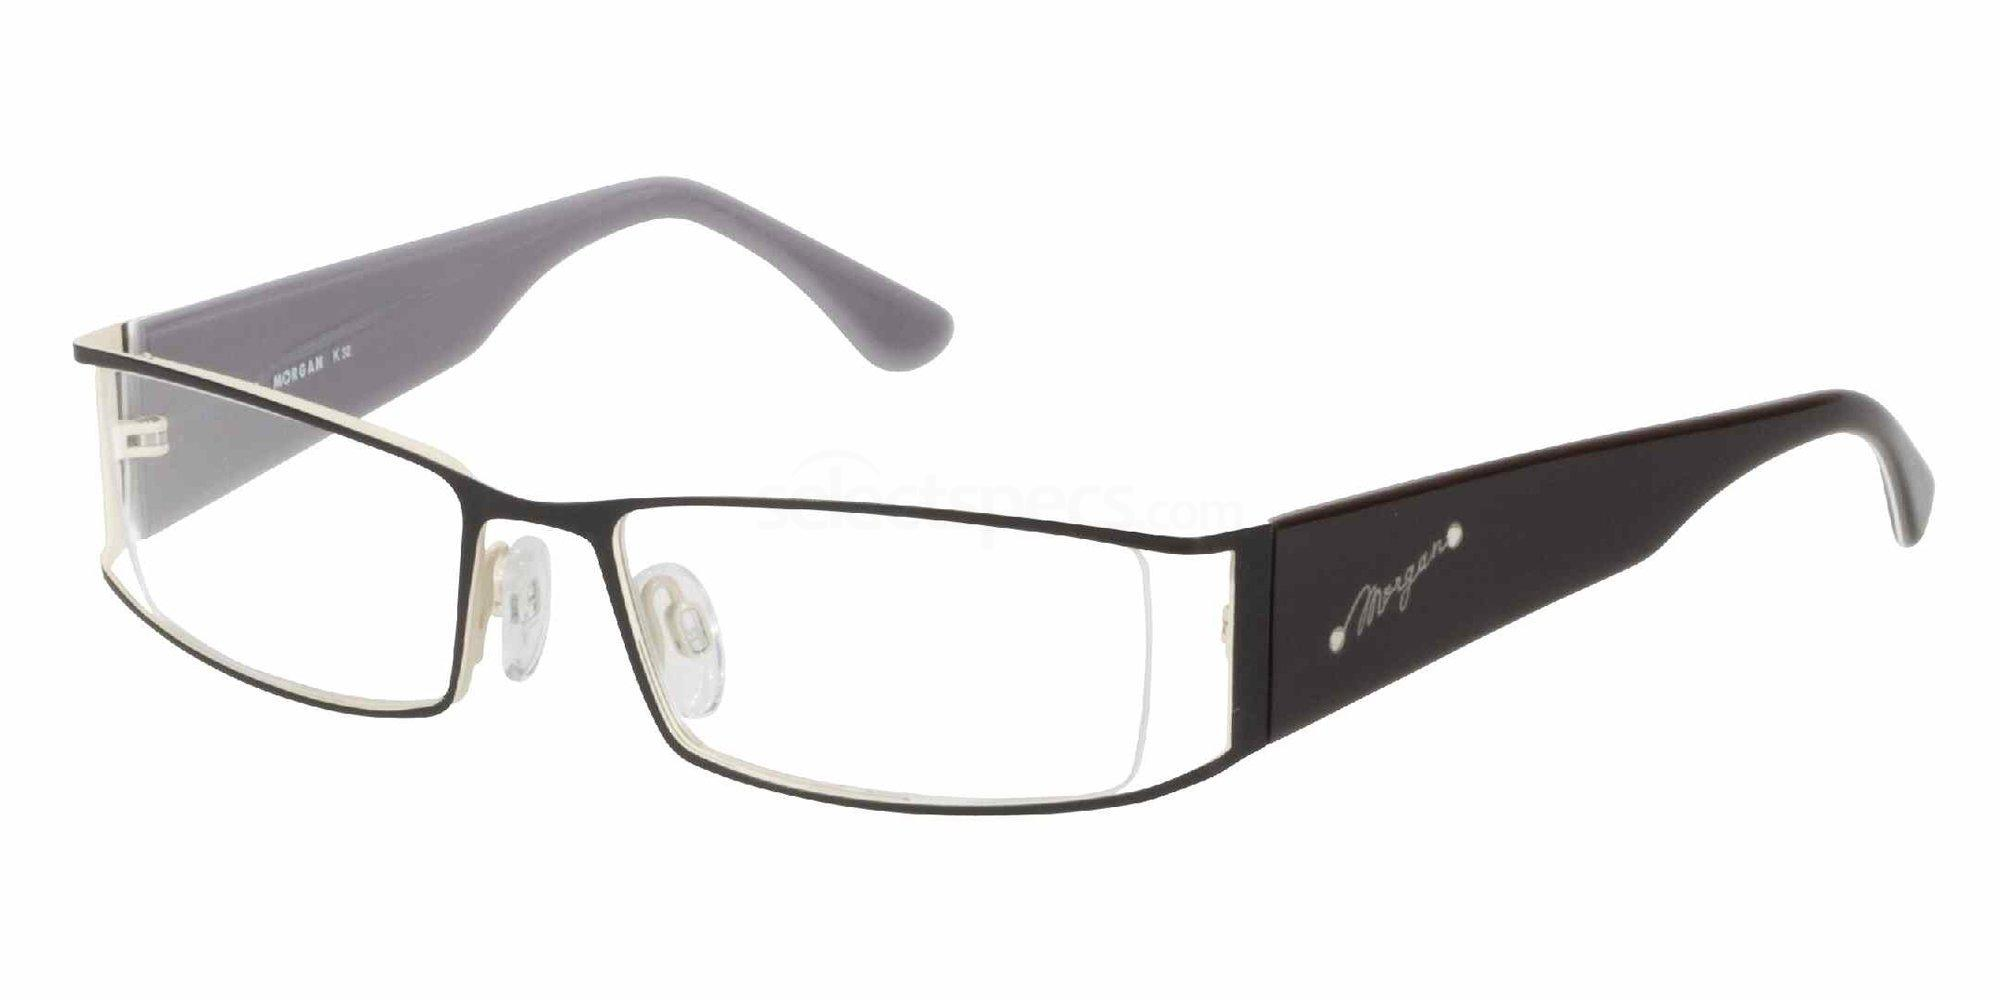 373 203104 Glasses, MORGAN Eyewear